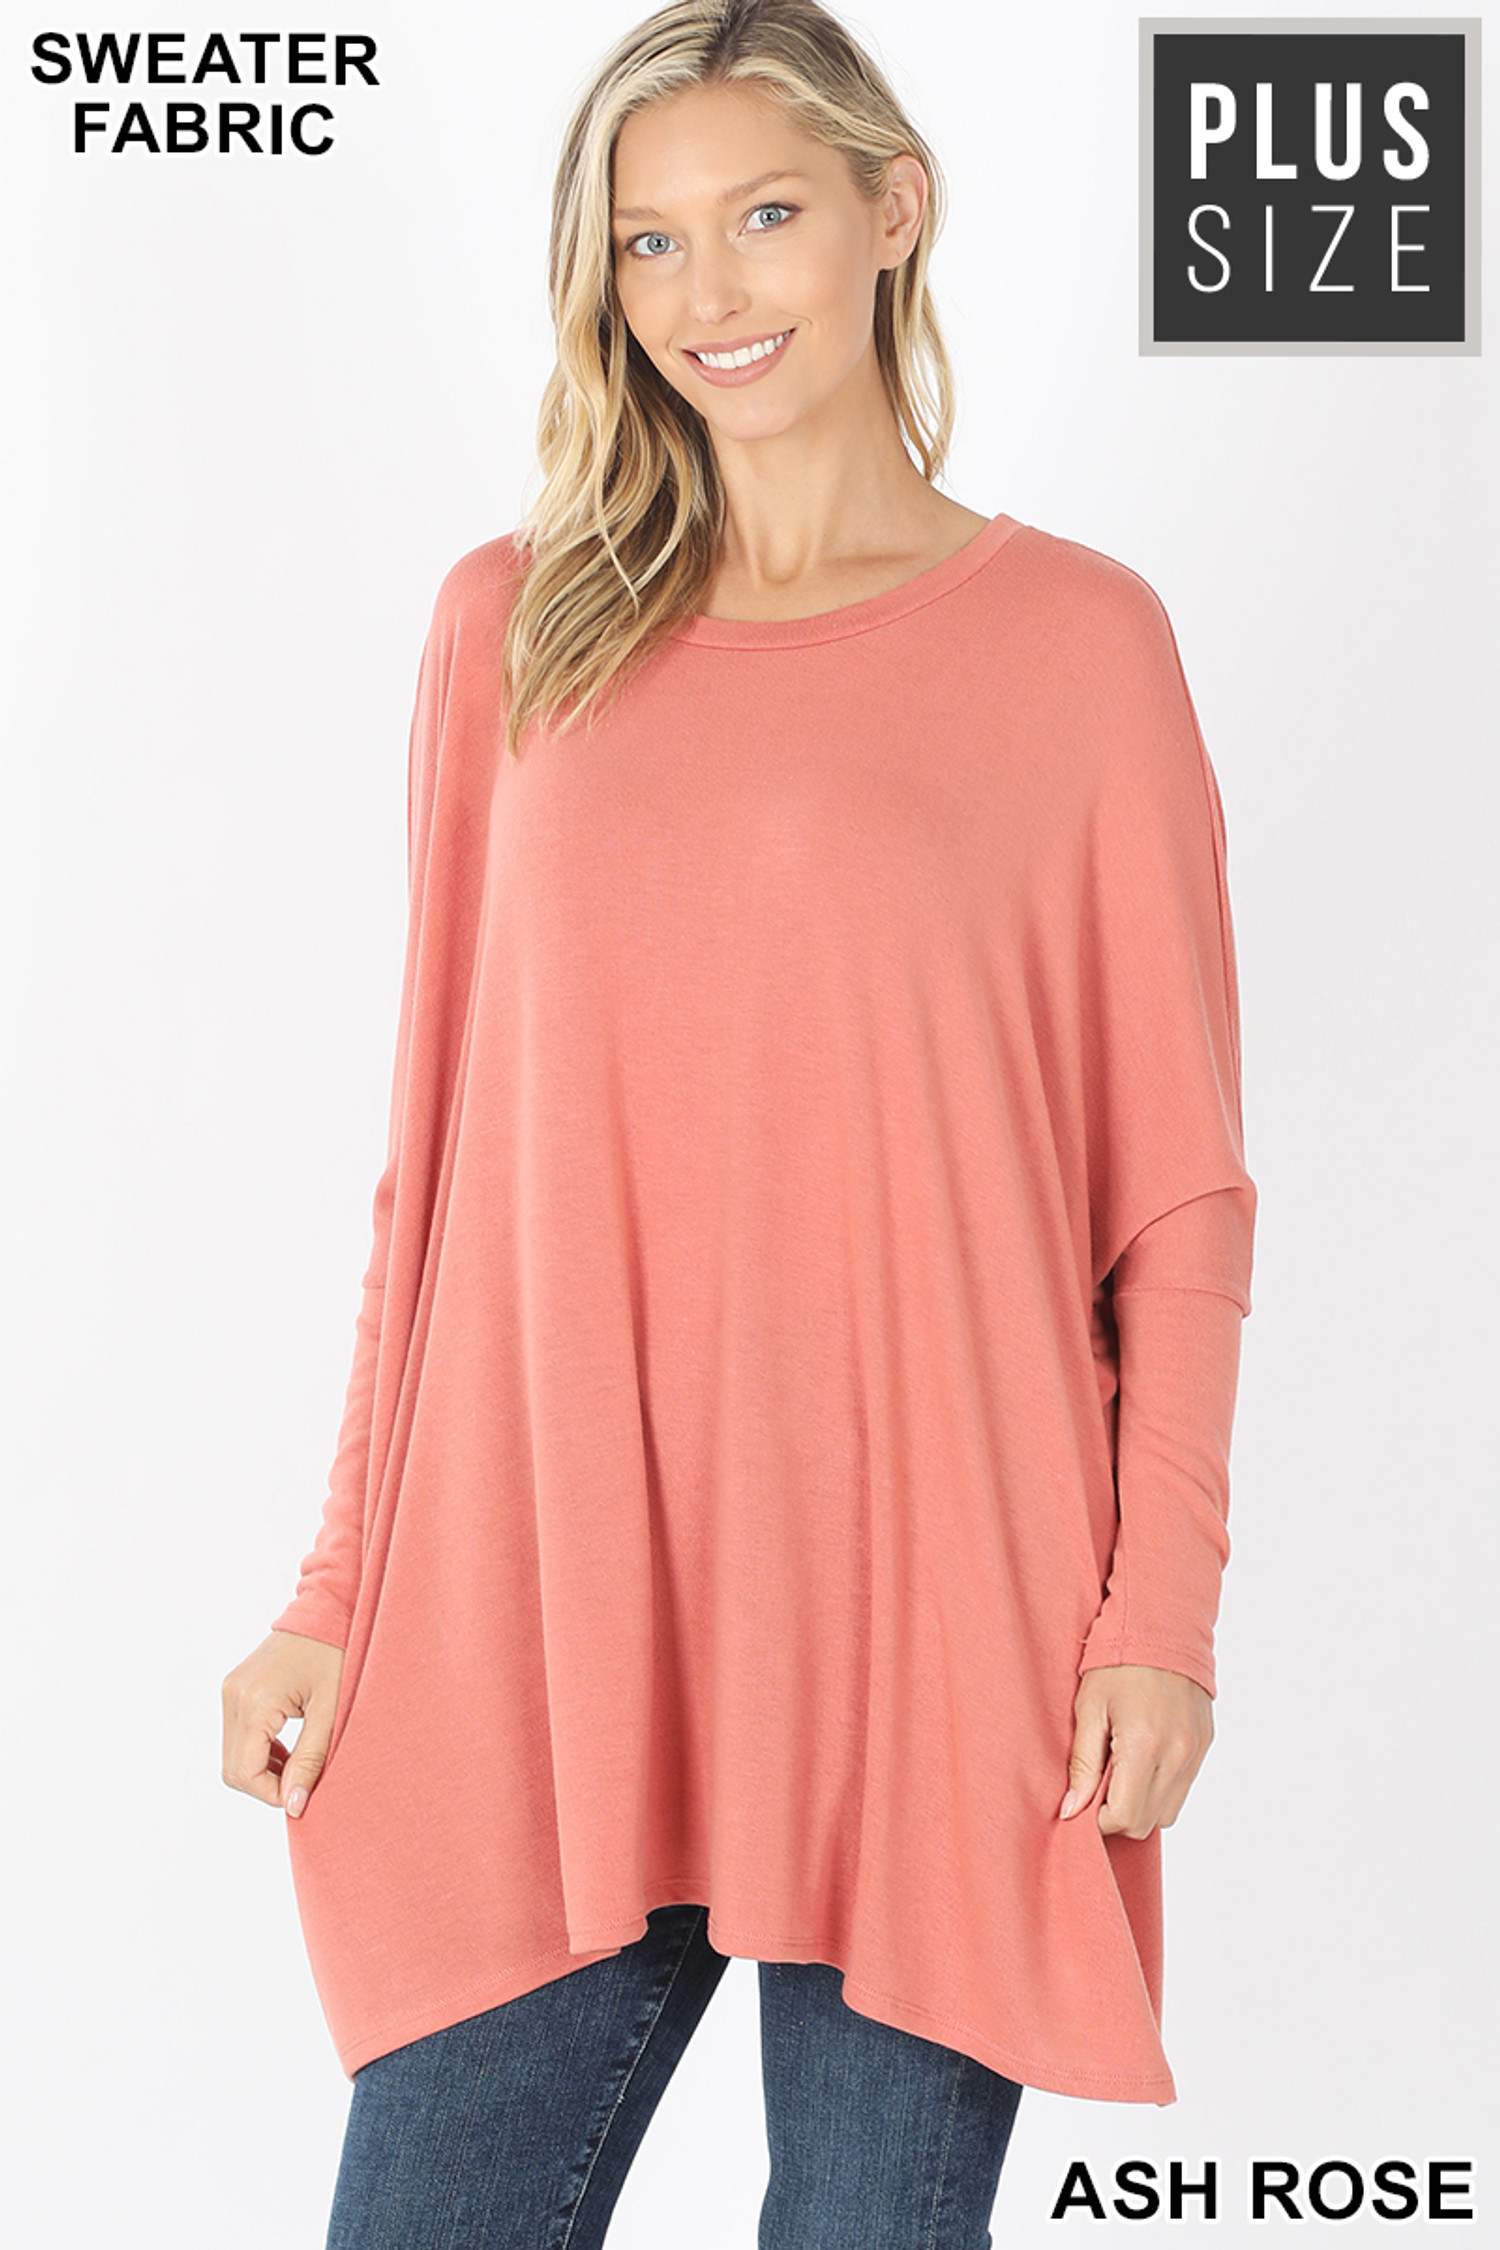 Front view of Ash Rose Oversized Round Neck Poncho Plus Size Sweater